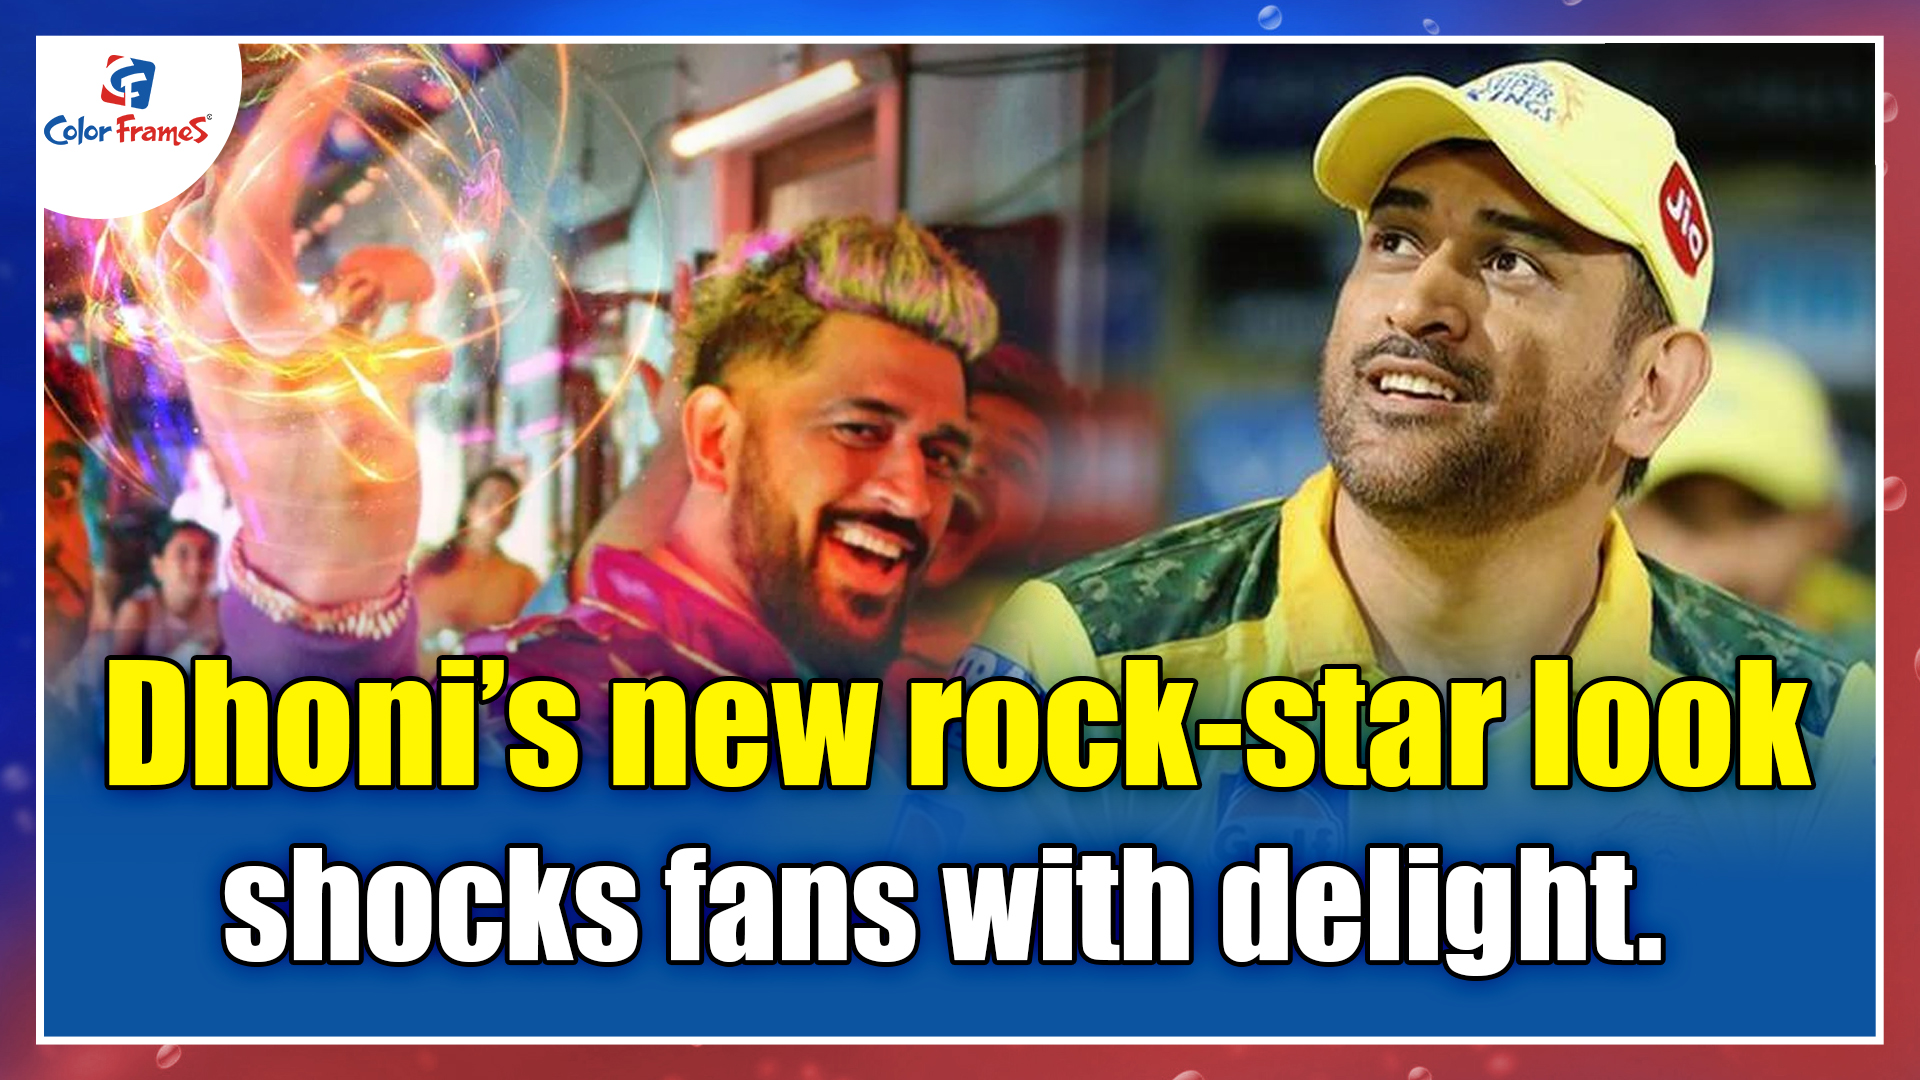 Dhoni's new rock-star look shocks fans with delight.